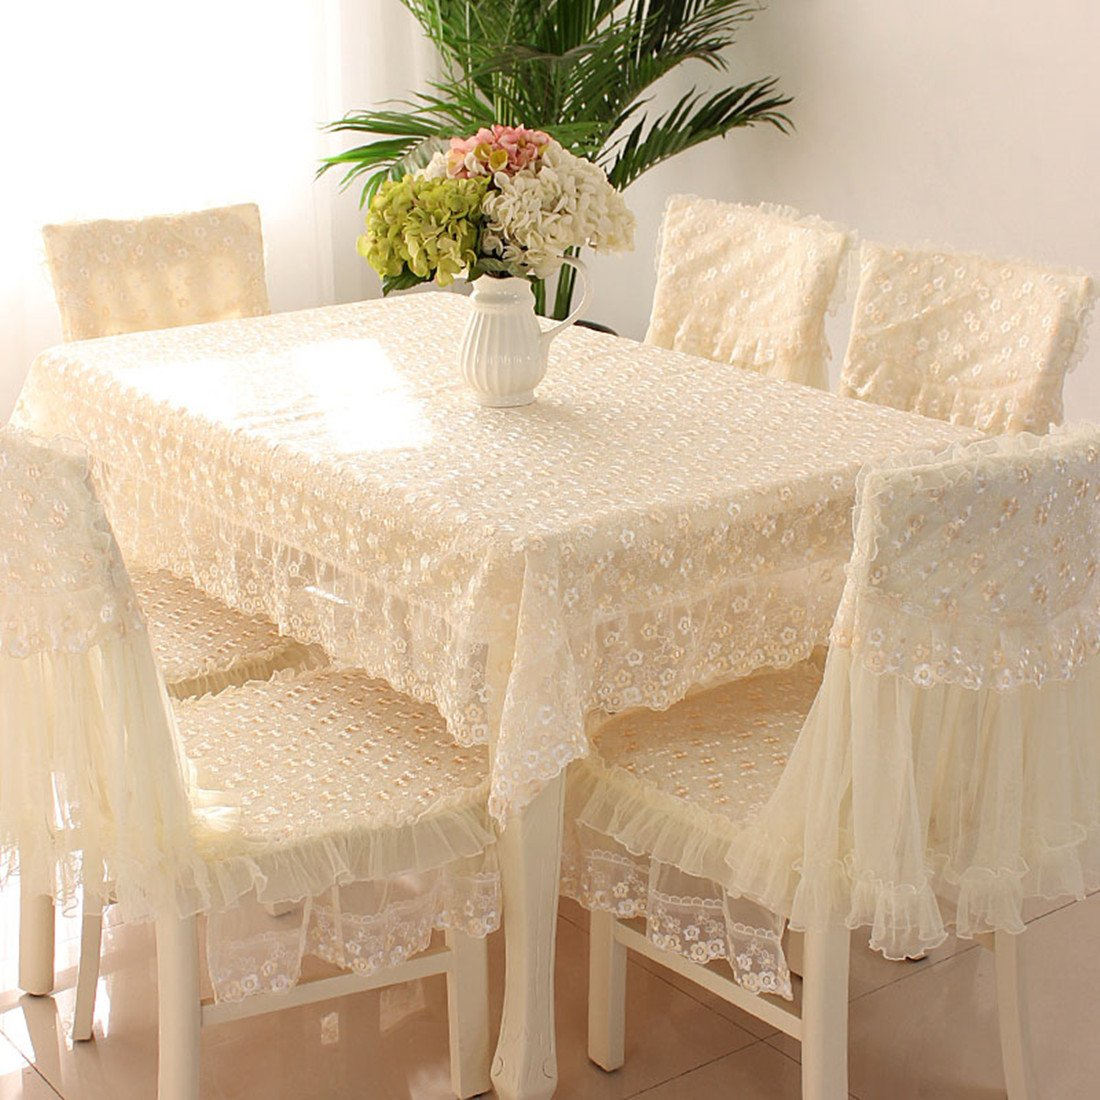 JH tablecloths Country style check lace square chair back covers and cushion cover set